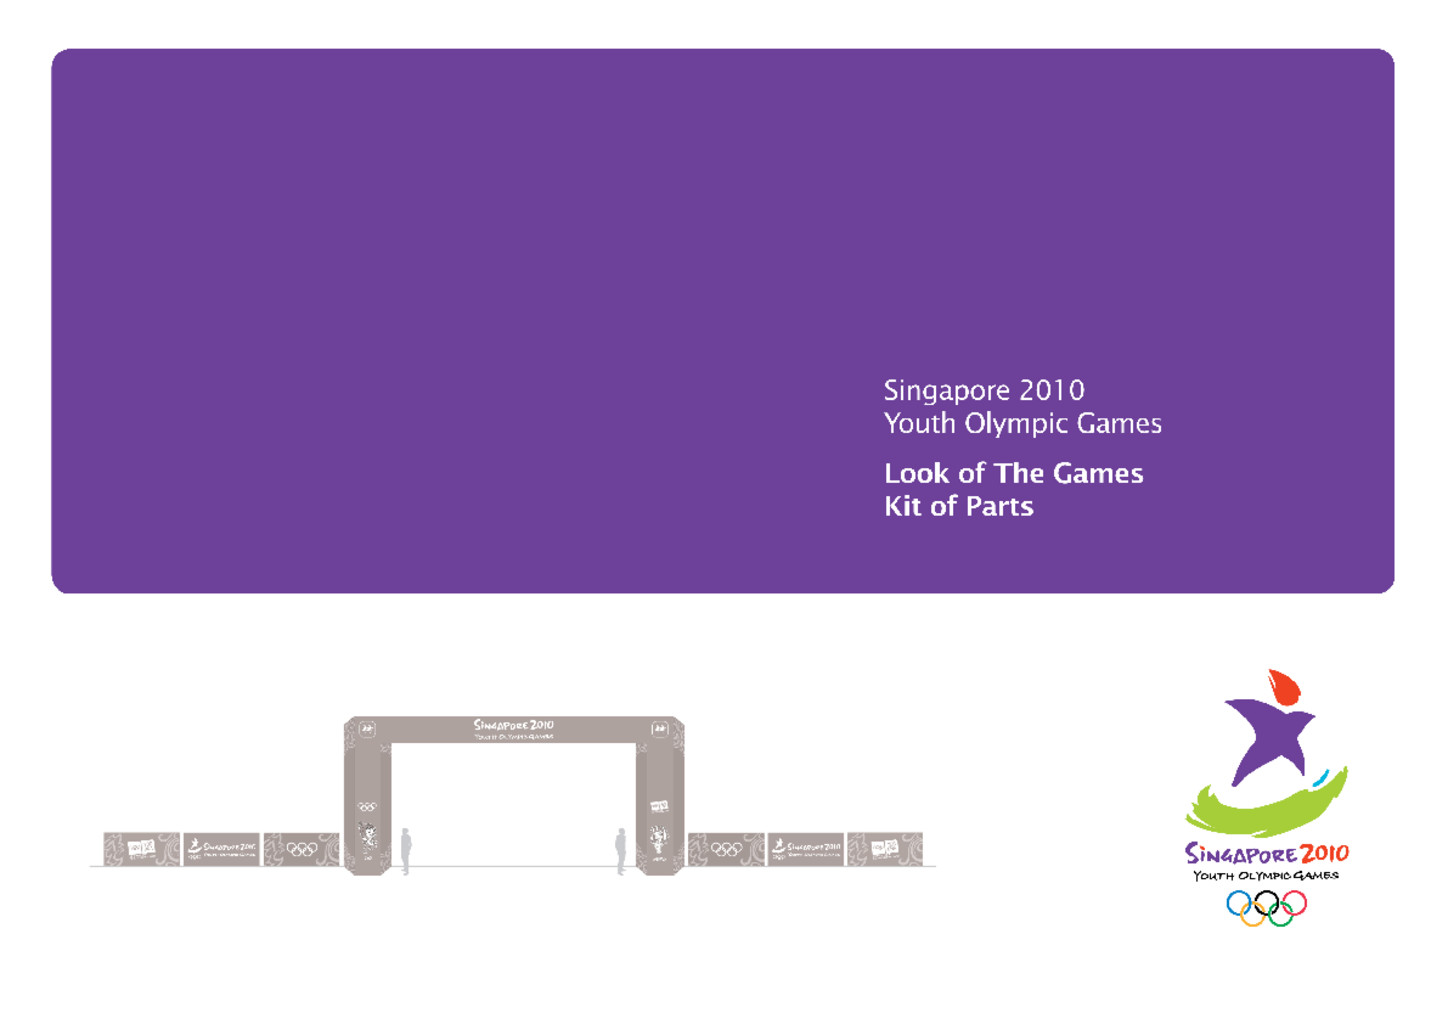 Look of the Games : kit of parts : Singapore 2010 Youth Olympic Games / Singapore Youth Olympic Games Organising Committee | Jeux olympiques de la jeunesse d'été. Comité d'organisation. 1, 2010, Singapour